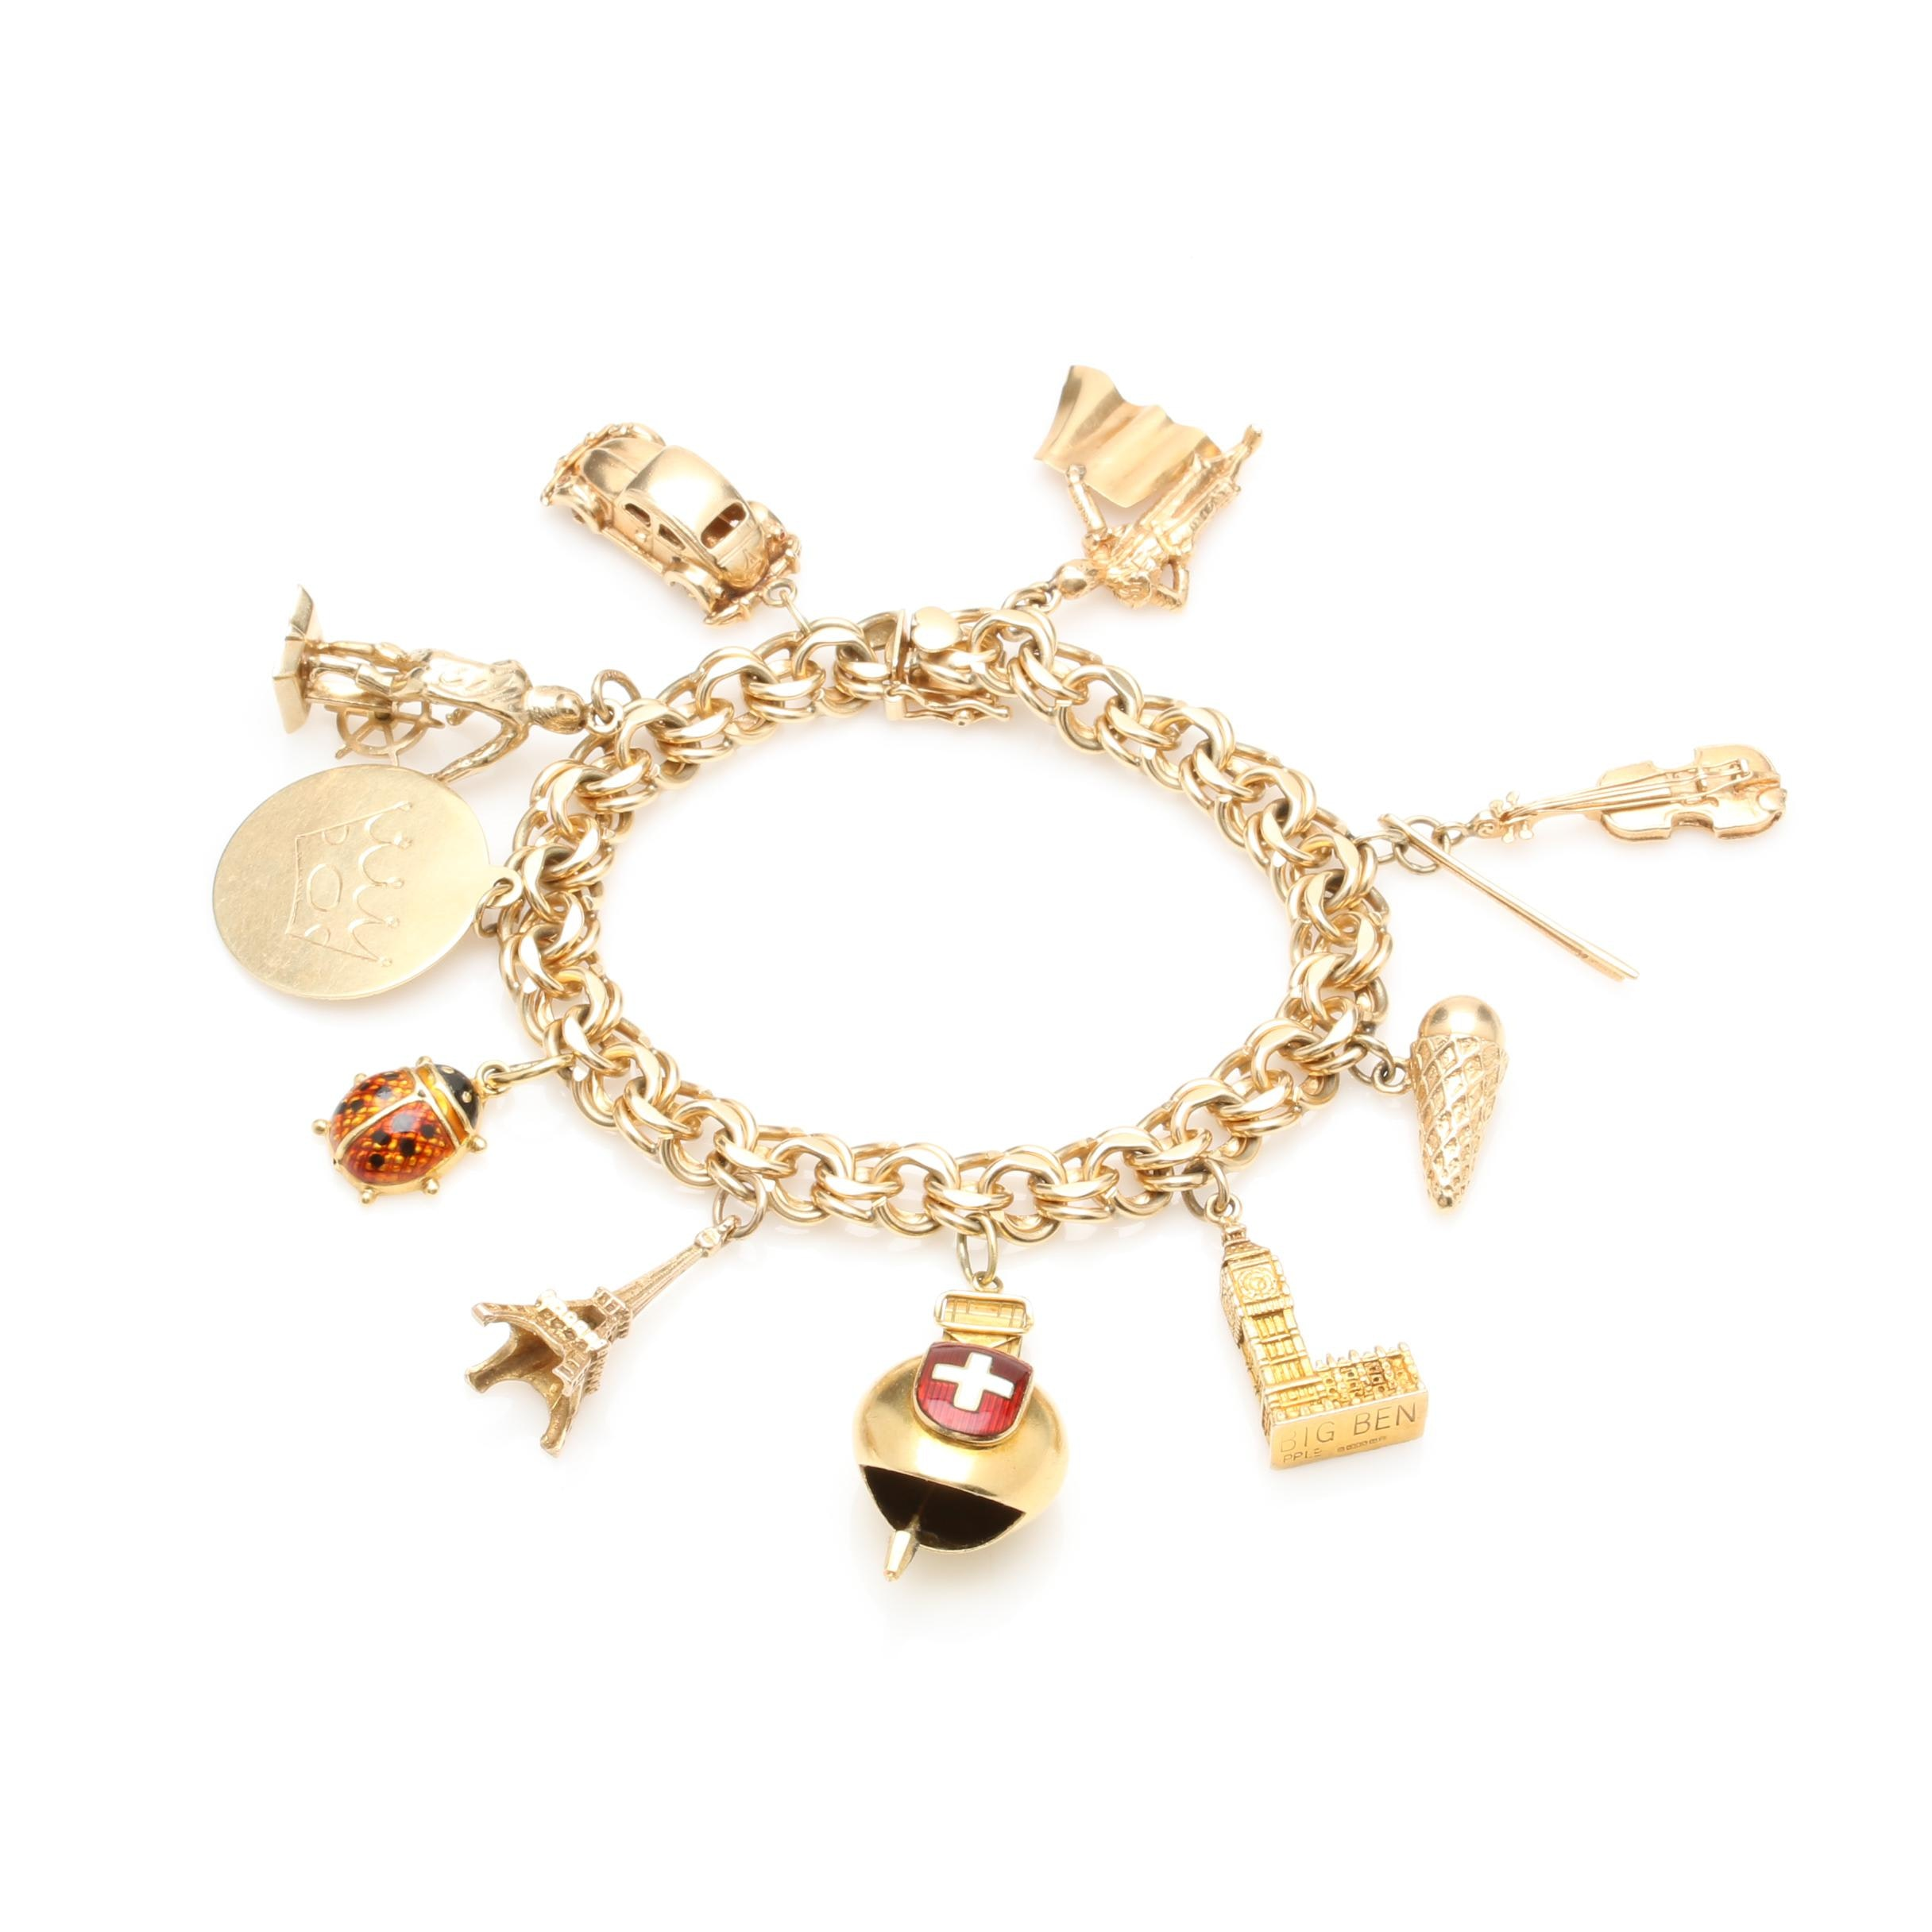 14K Yellow Gold Bracelet With Mixed Gold Charms